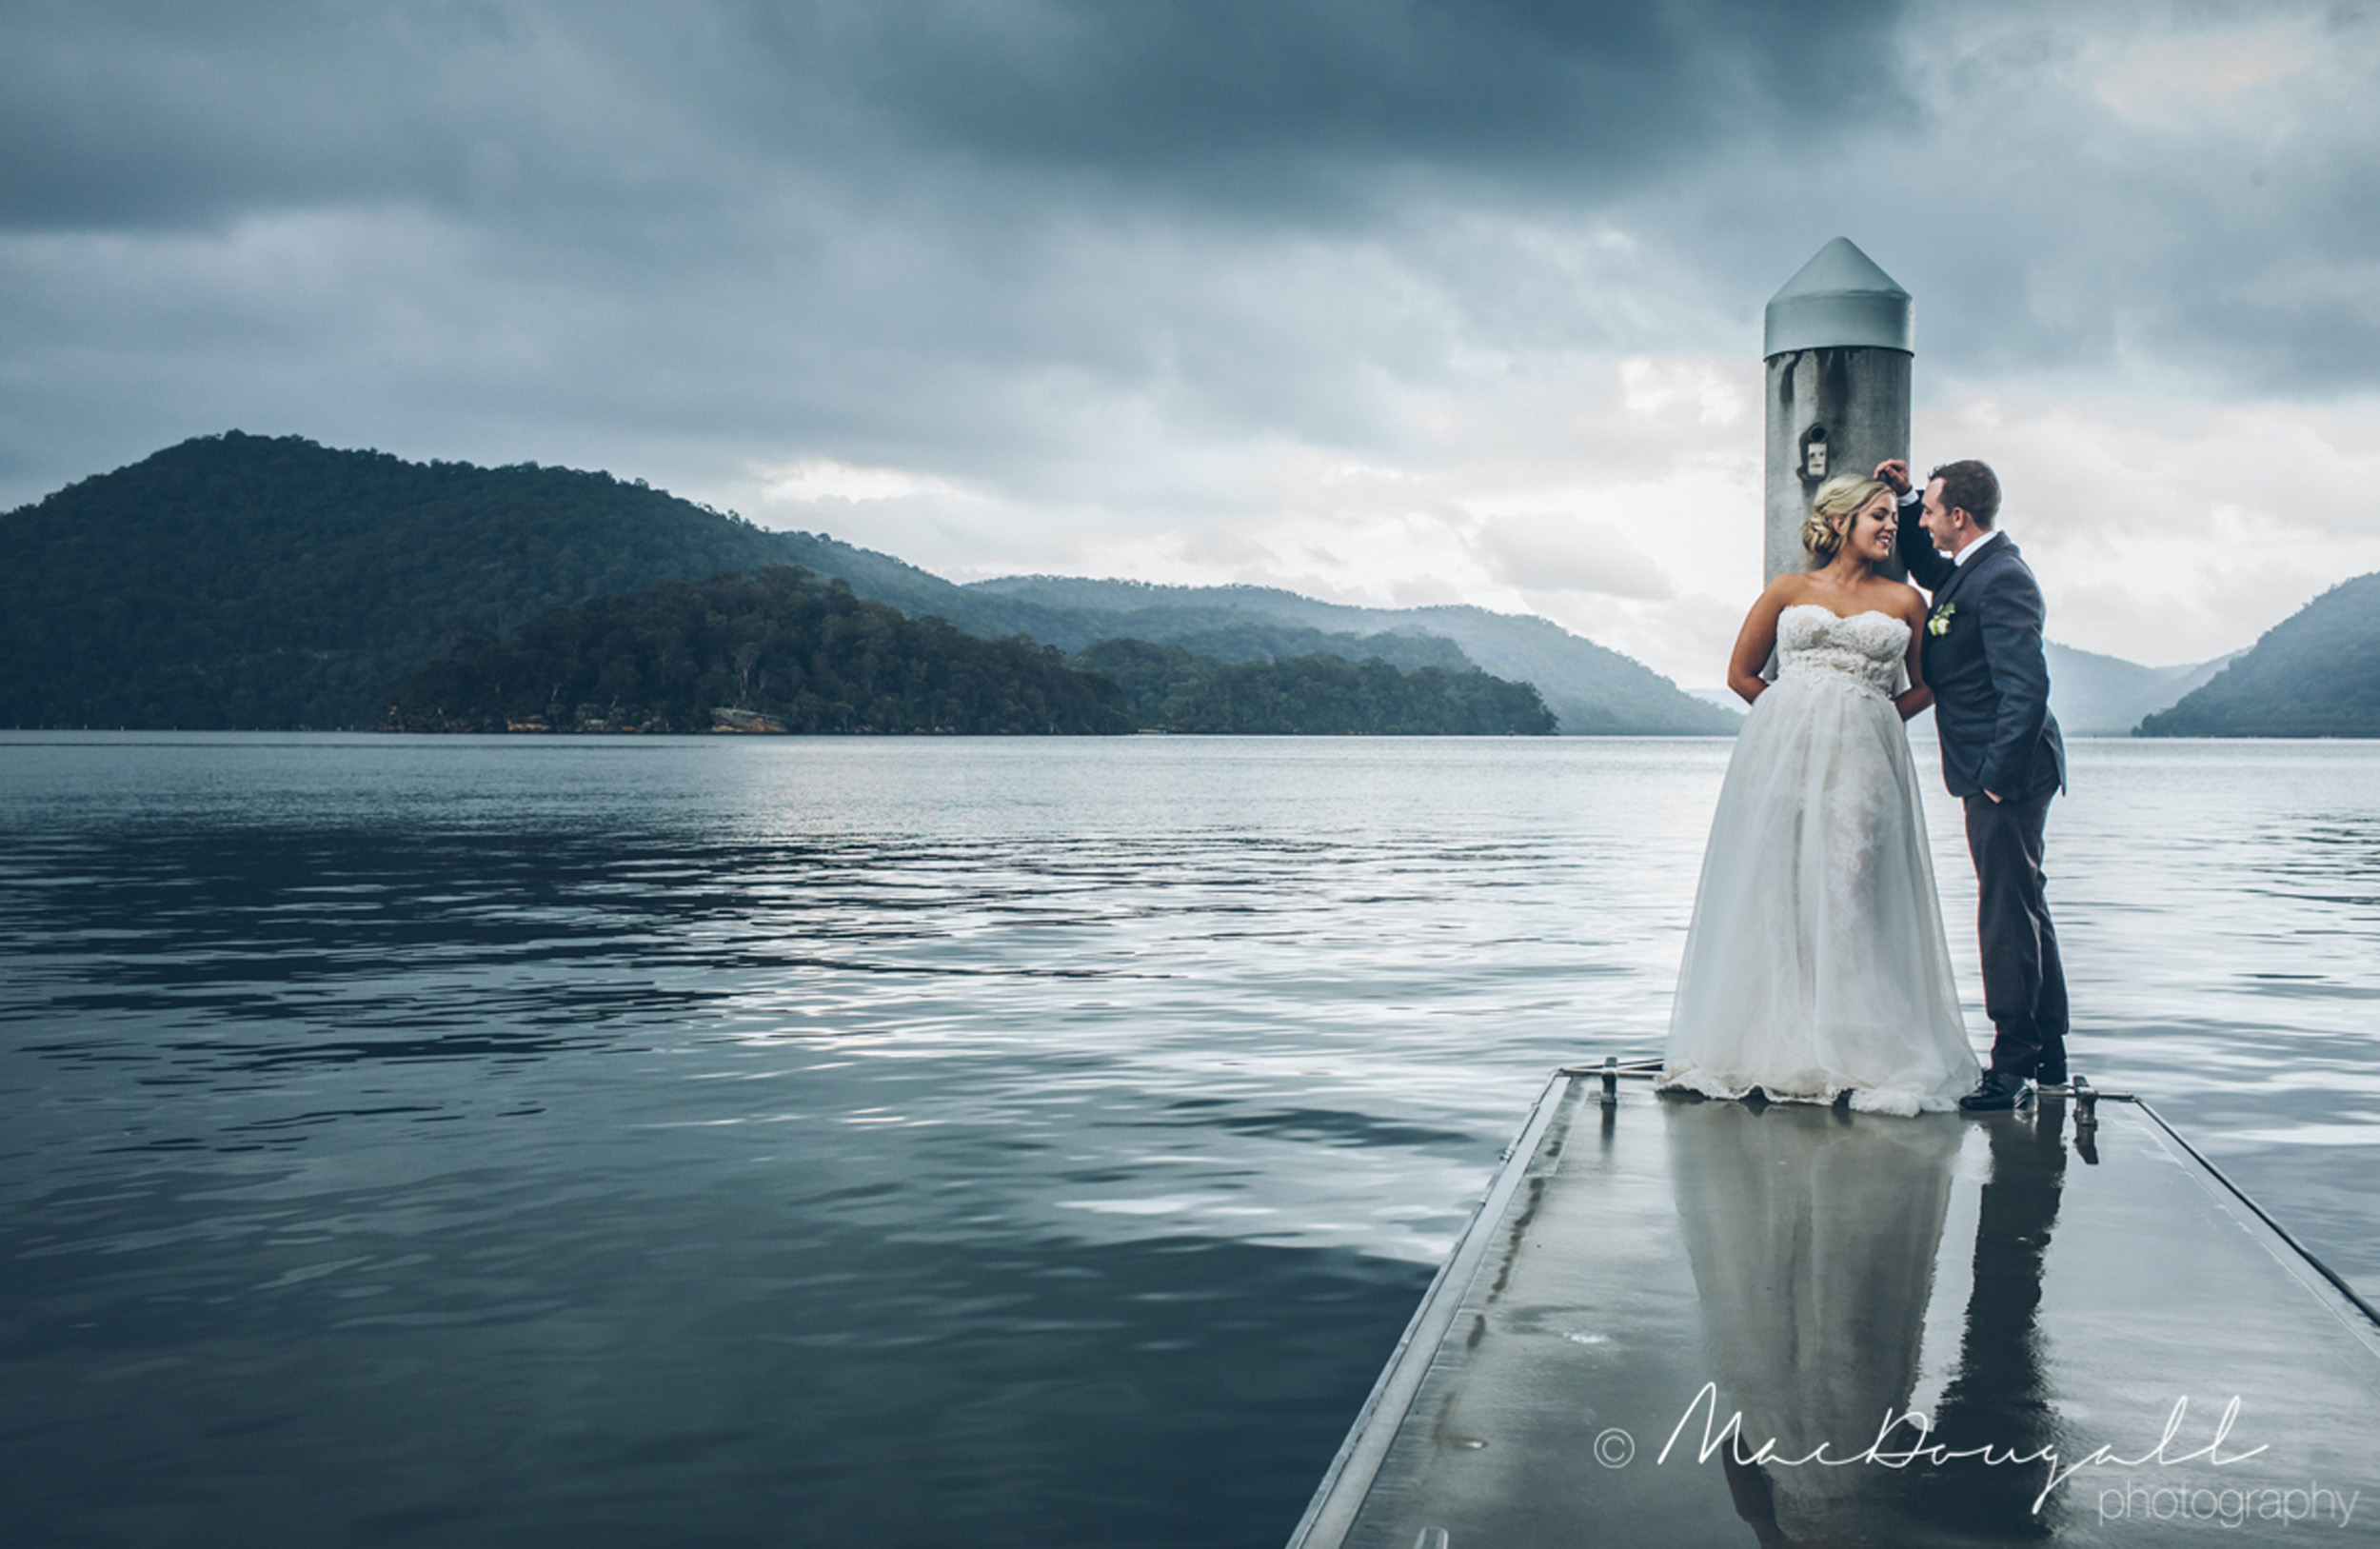 MacDOugall Photography Real Wedding